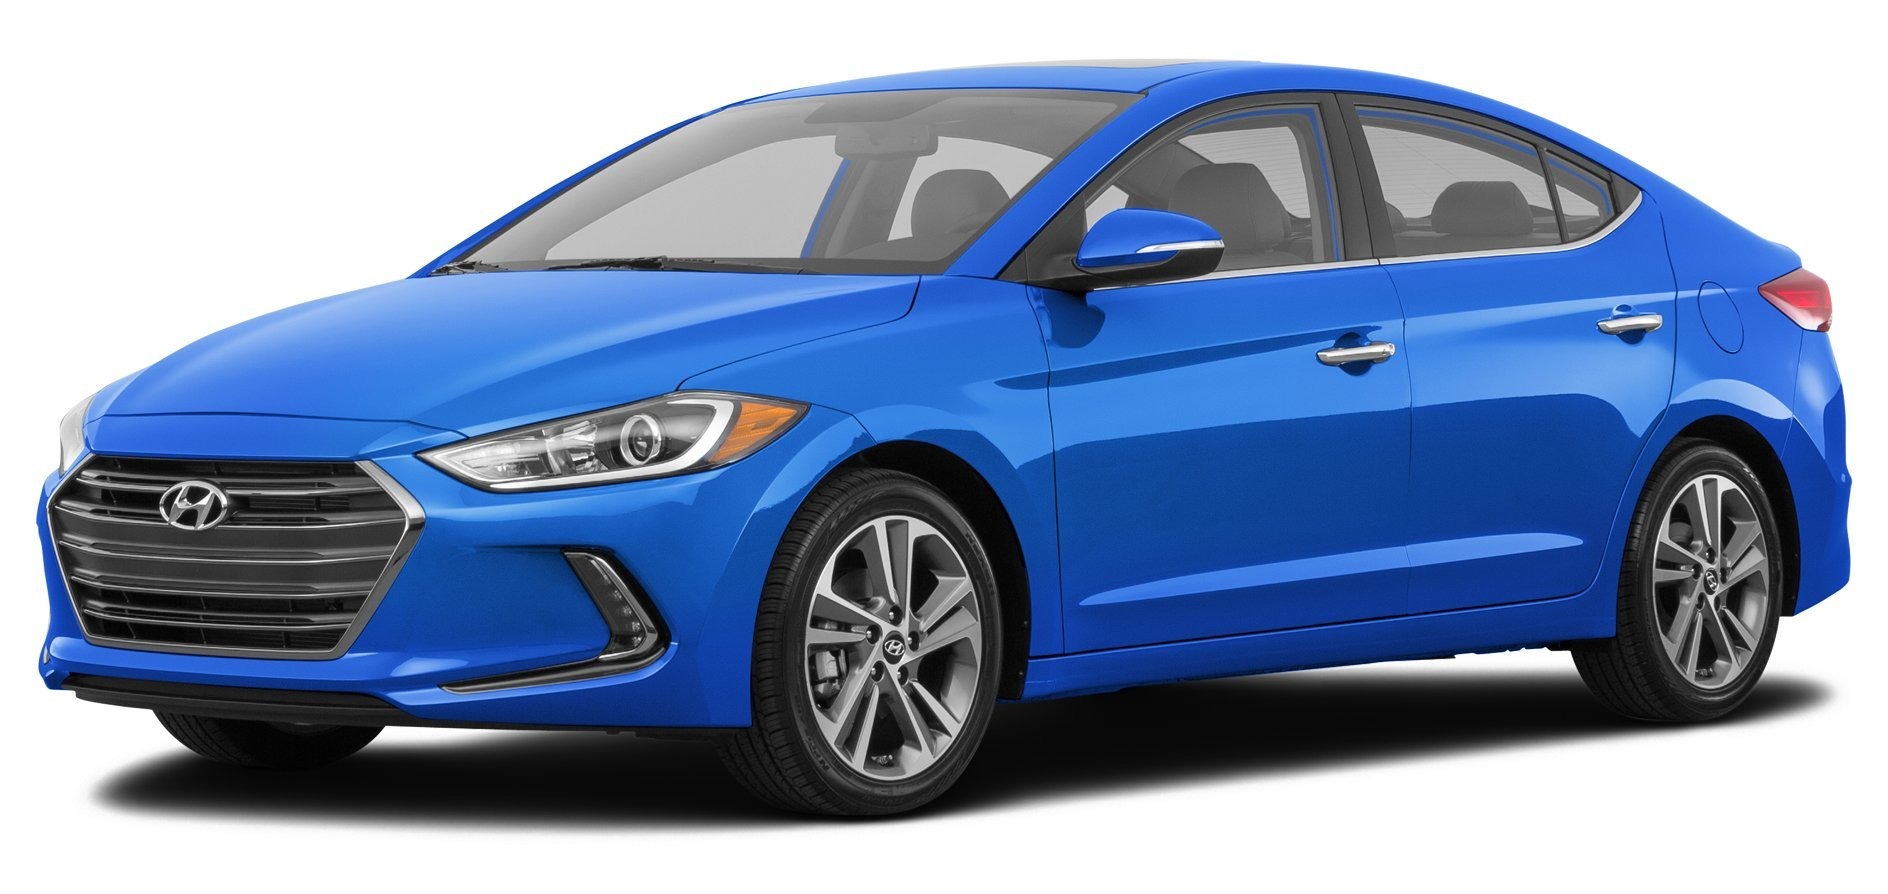 ... 2017 Hyundai Elantra Limited, 2.0L Automatic Transmission PZEV (Alabama) ...